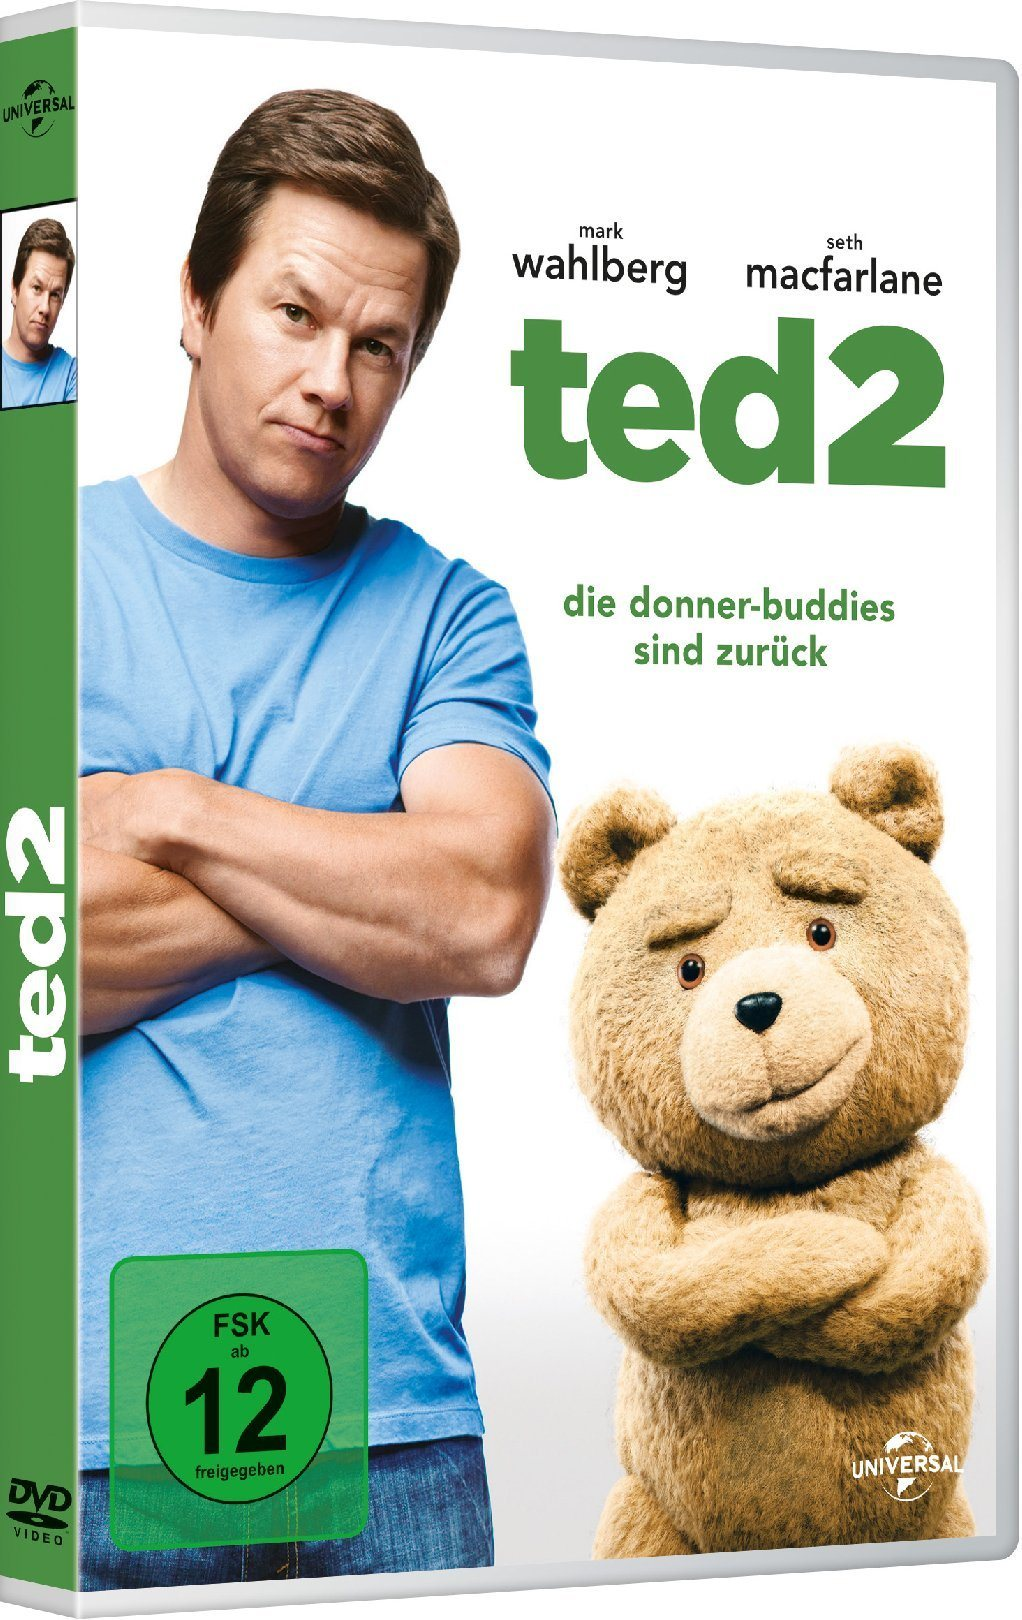 Universal Ted 2 »DVD«